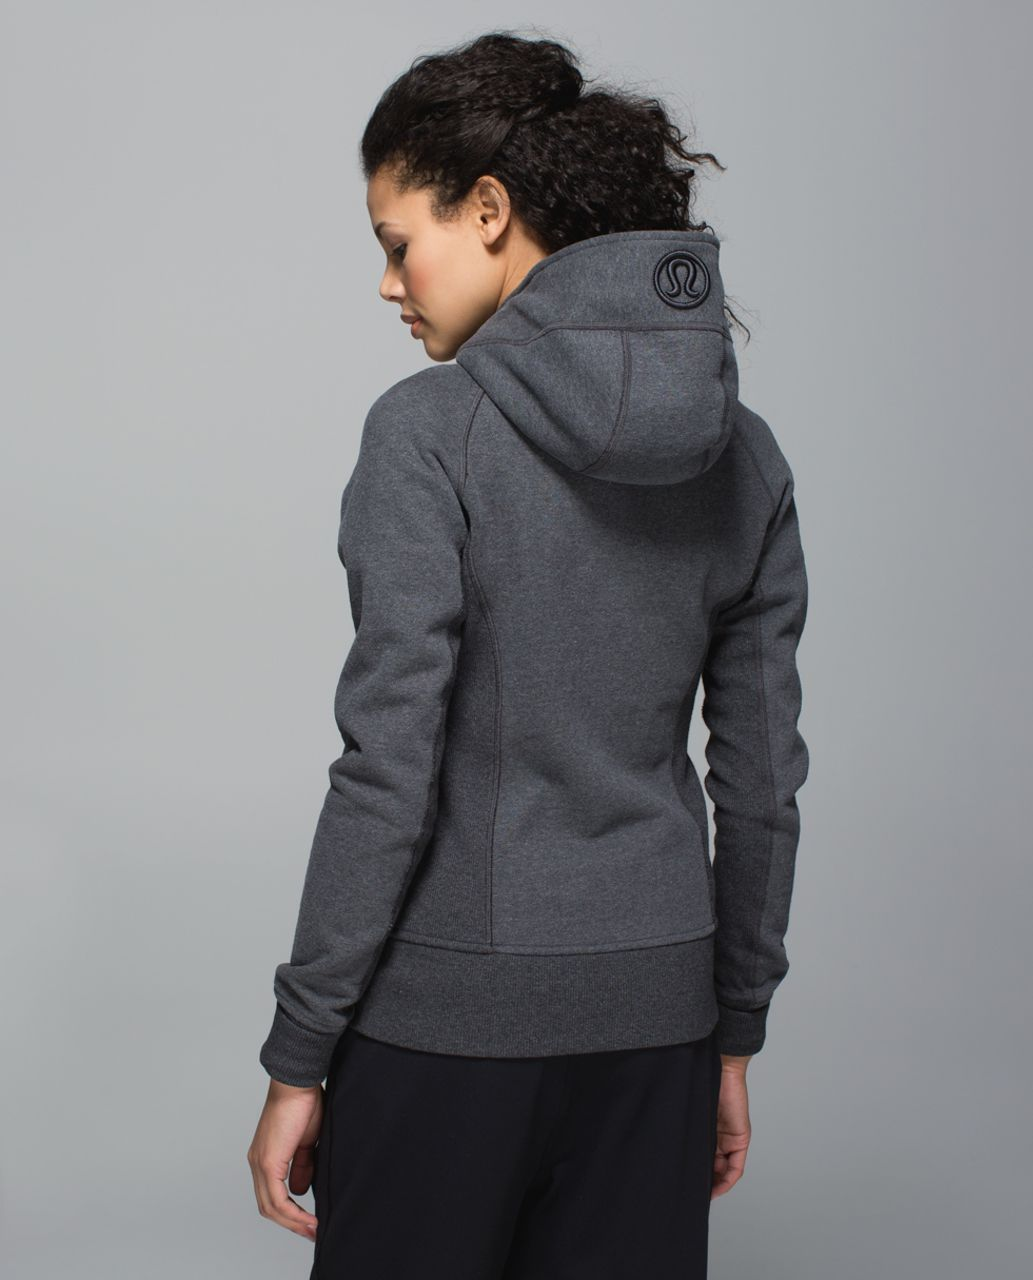 Lululemon Scuba Hoodie II - Heathered Dark Grey / Black - lulu ...